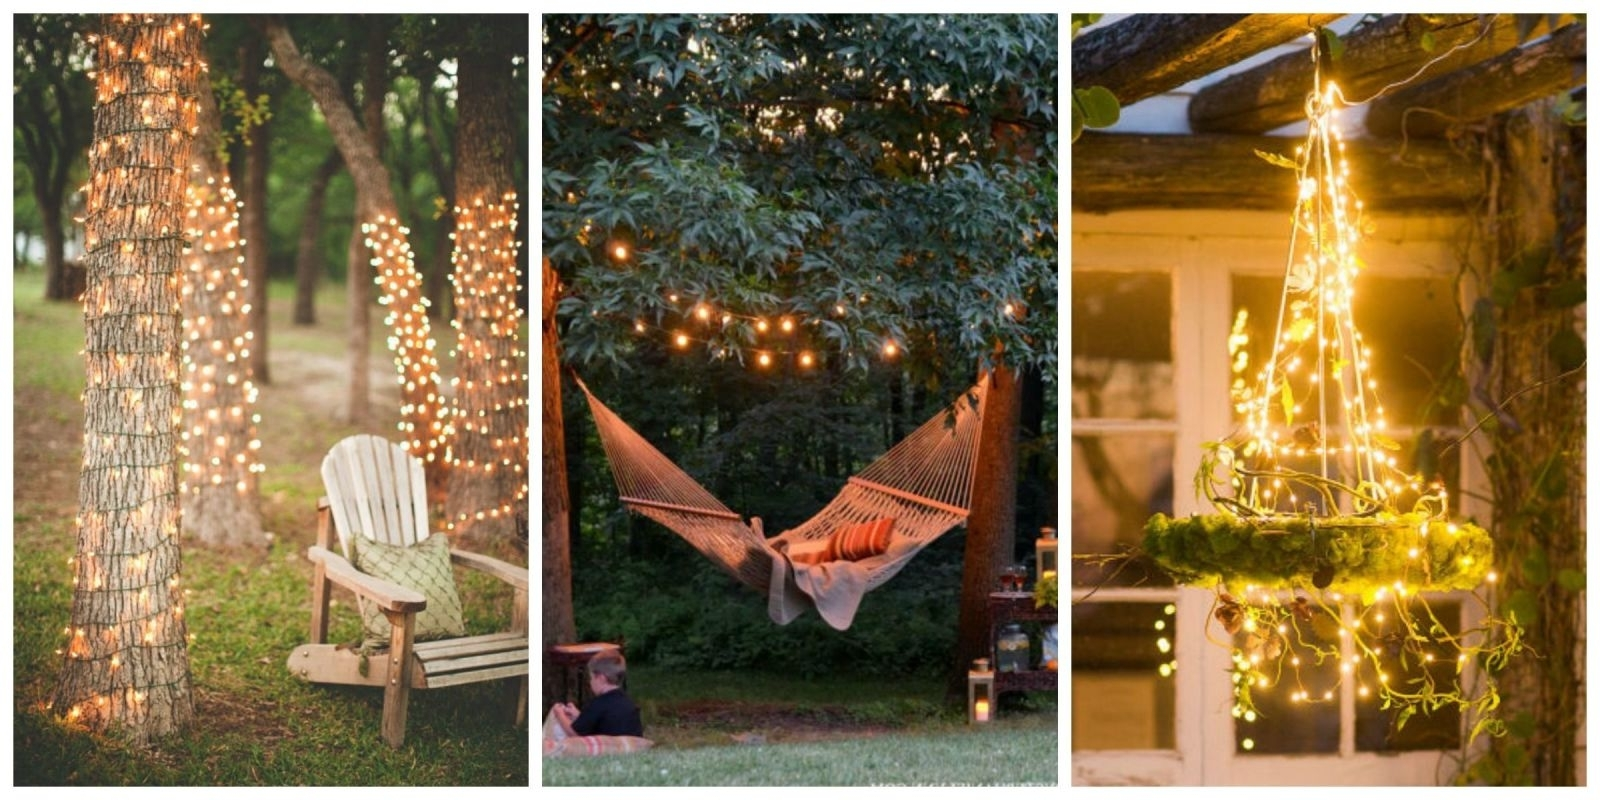 Widely Used Garden And Outdoor String Lights Intended For Backyard String Lights Pics Patio Led Porch Ideas Garden Outdoor (View 20 of 20)